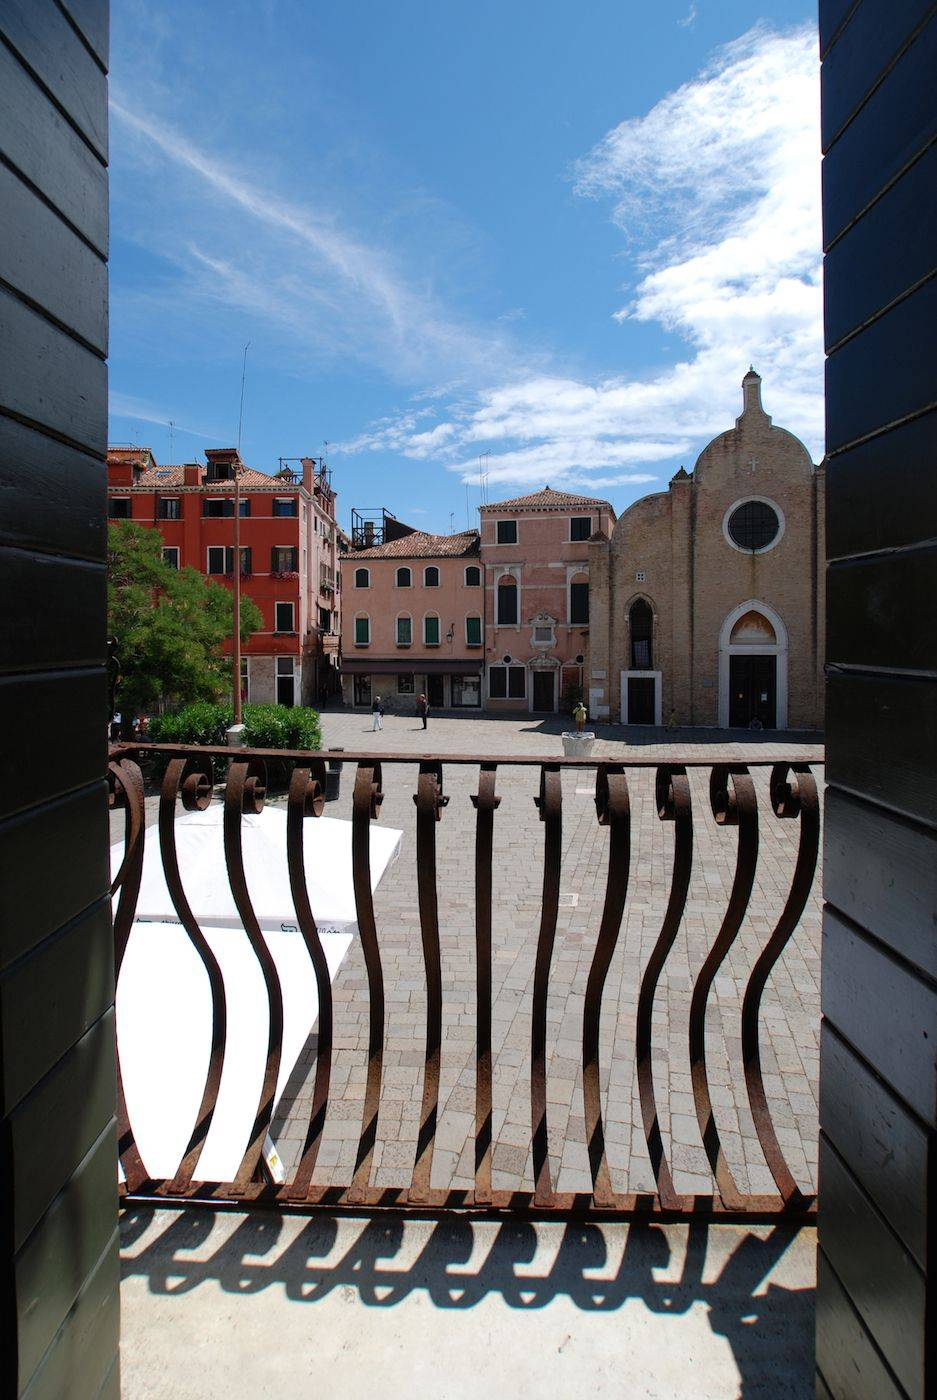 the view is incredibly charming, 100% Venetian